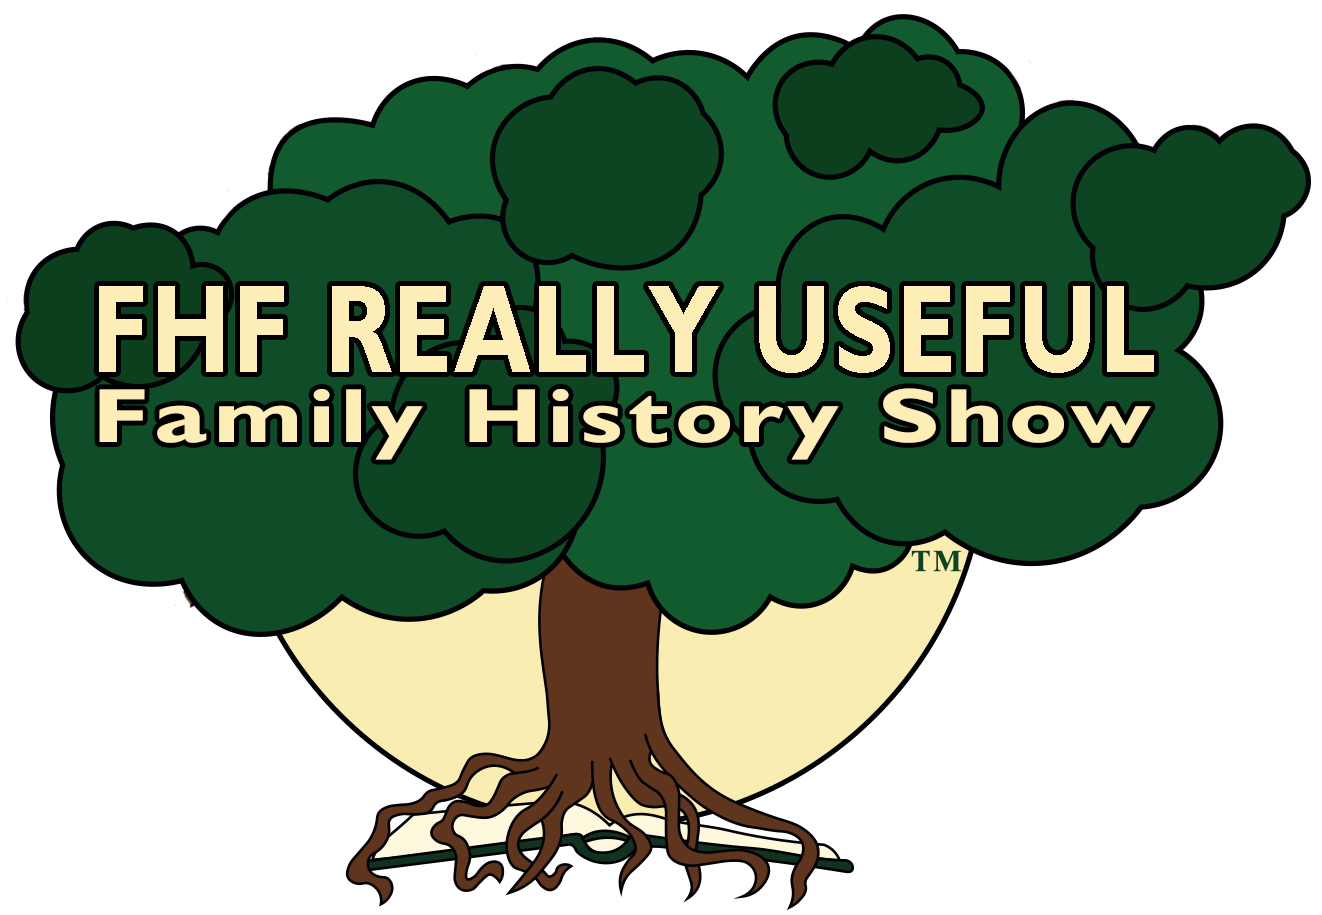 FHF Really Useful Family History Show Early Bird Pricing until June 30